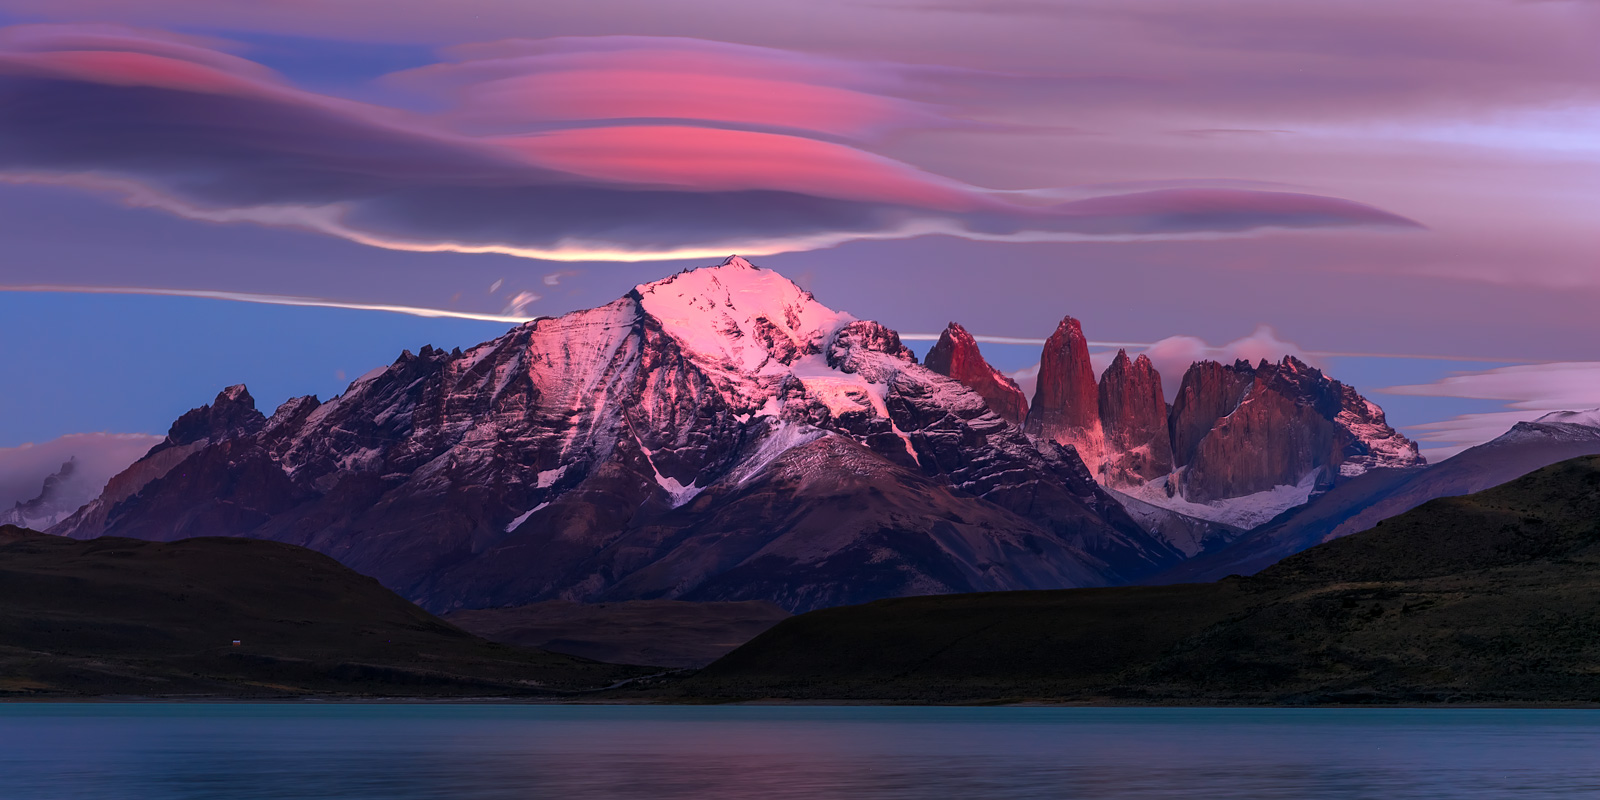 A Limited Edition, Fine Art photograph of the mountains in all their glory during an amazing morning sunrise at Torres del Paine...